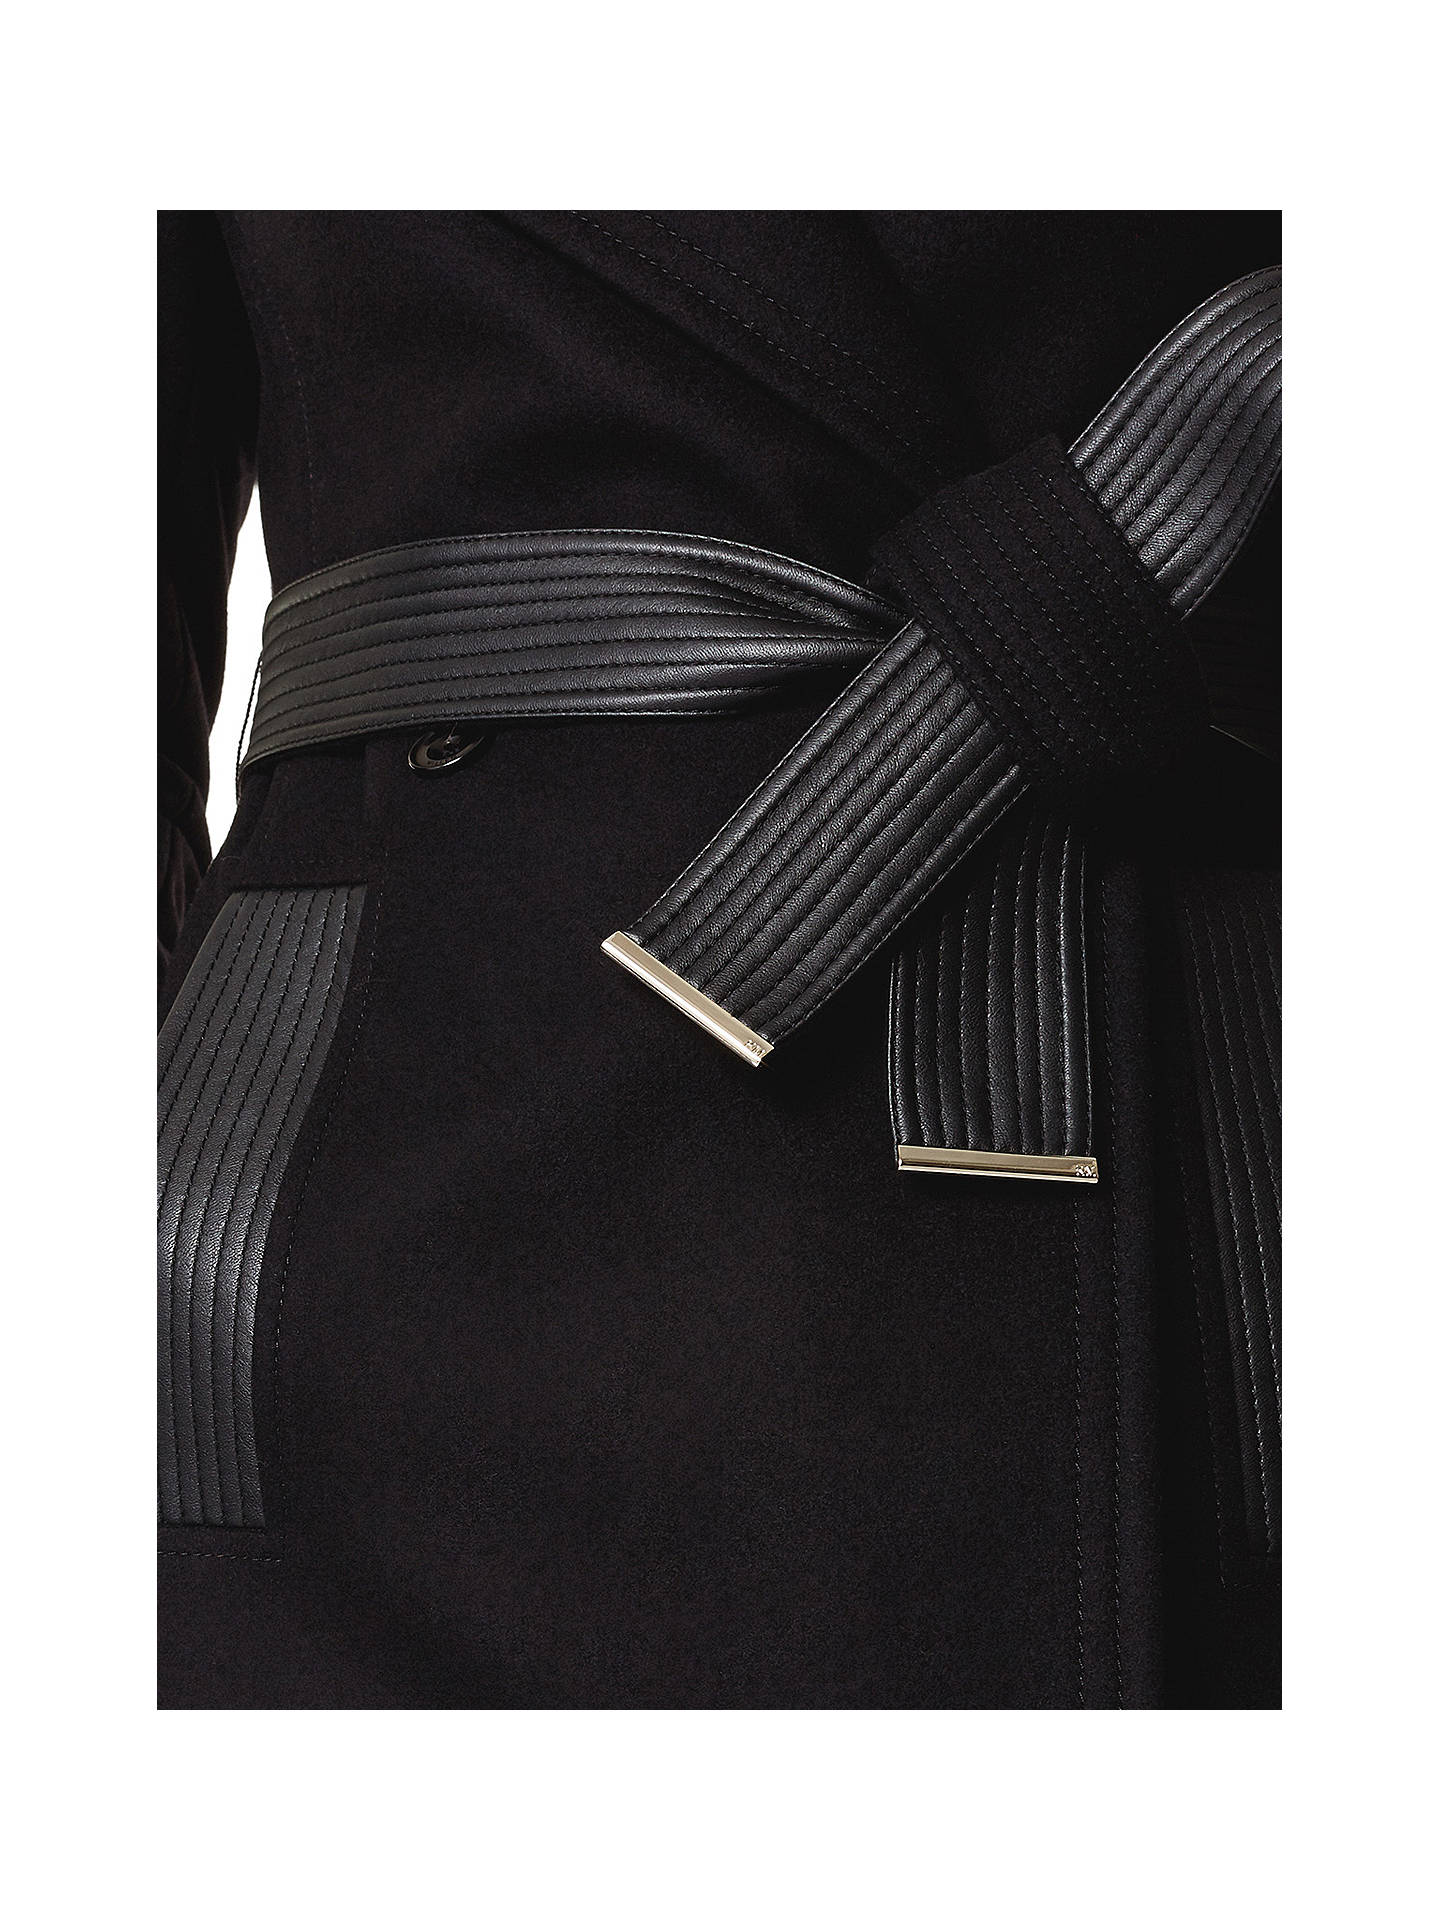 BuyKaren Millen Belt Trench Coat, Black, 6 Online at johnlewis.com